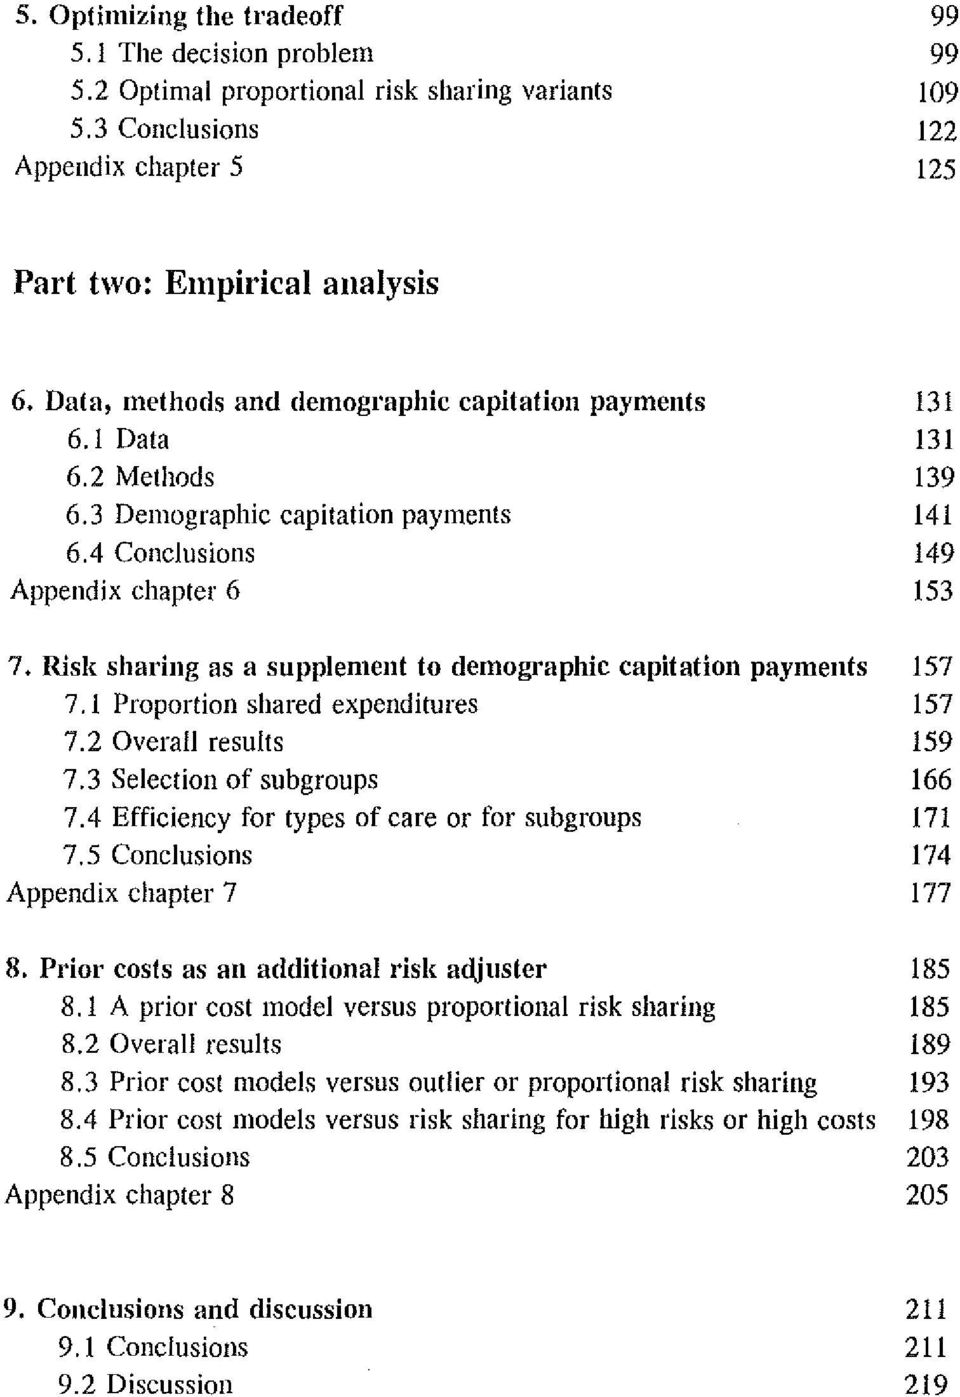 rusk sharing as a snpplement to demographic capitation payments 157 7. 1 Proportion shared expenditures 157 7.2 Overall results 159 7.3 Selection of subgroups 166 7.